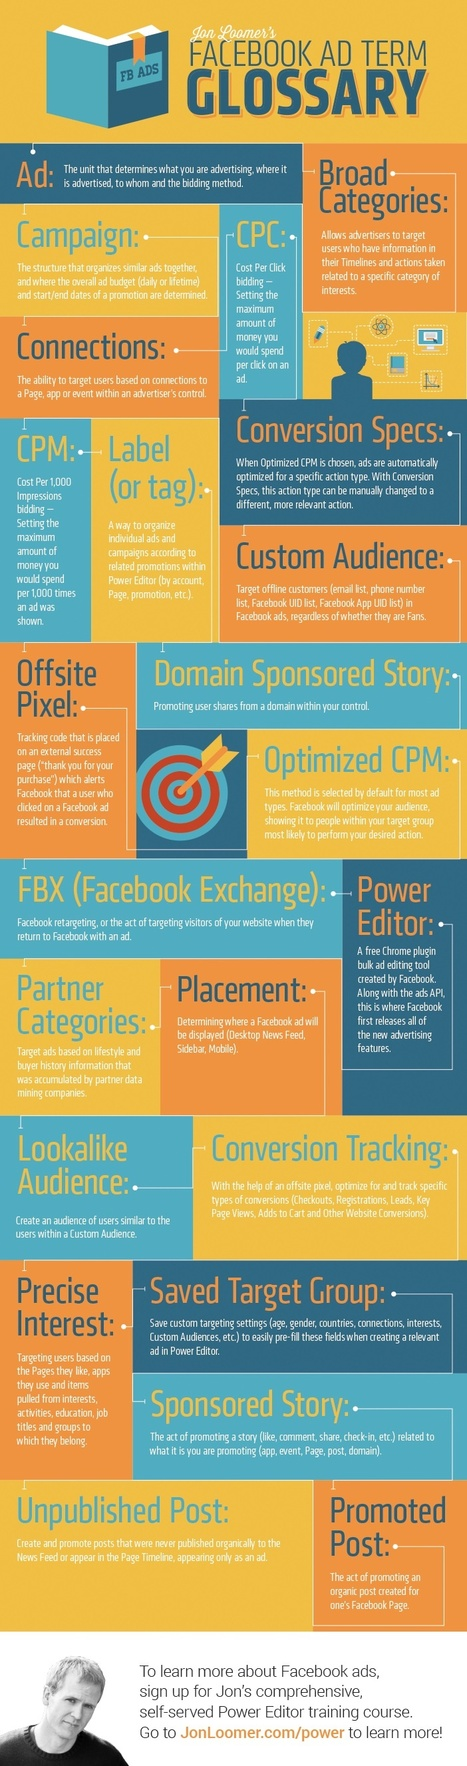 Infographic: Facebook ad term glossary | MarketingHits | Scoop.it